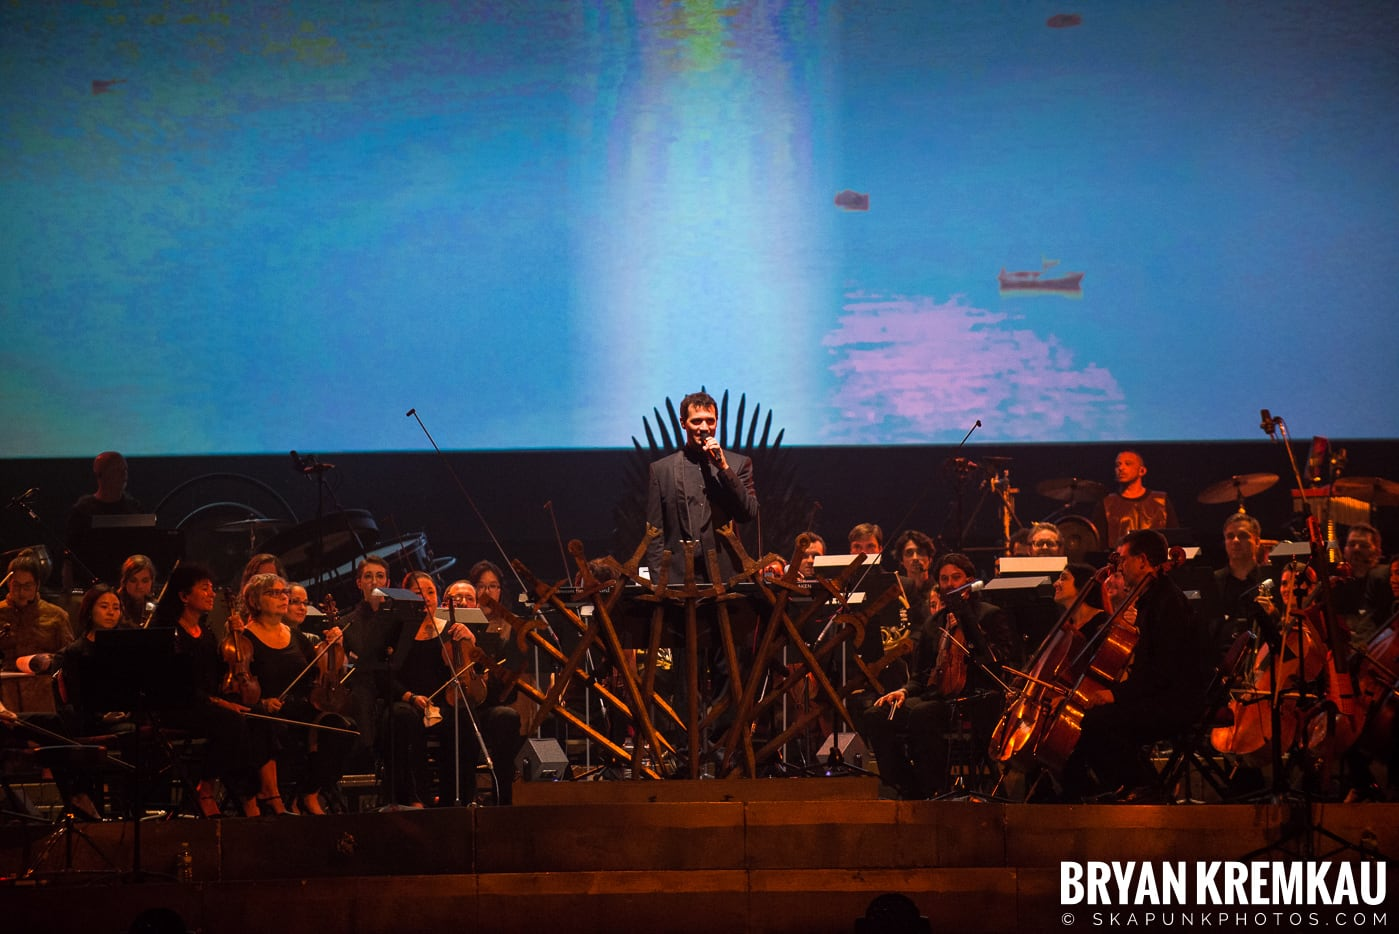 Game of Thrones Live Experience @ Prudential Center, Newark, NJ - 9.26.18 (26)